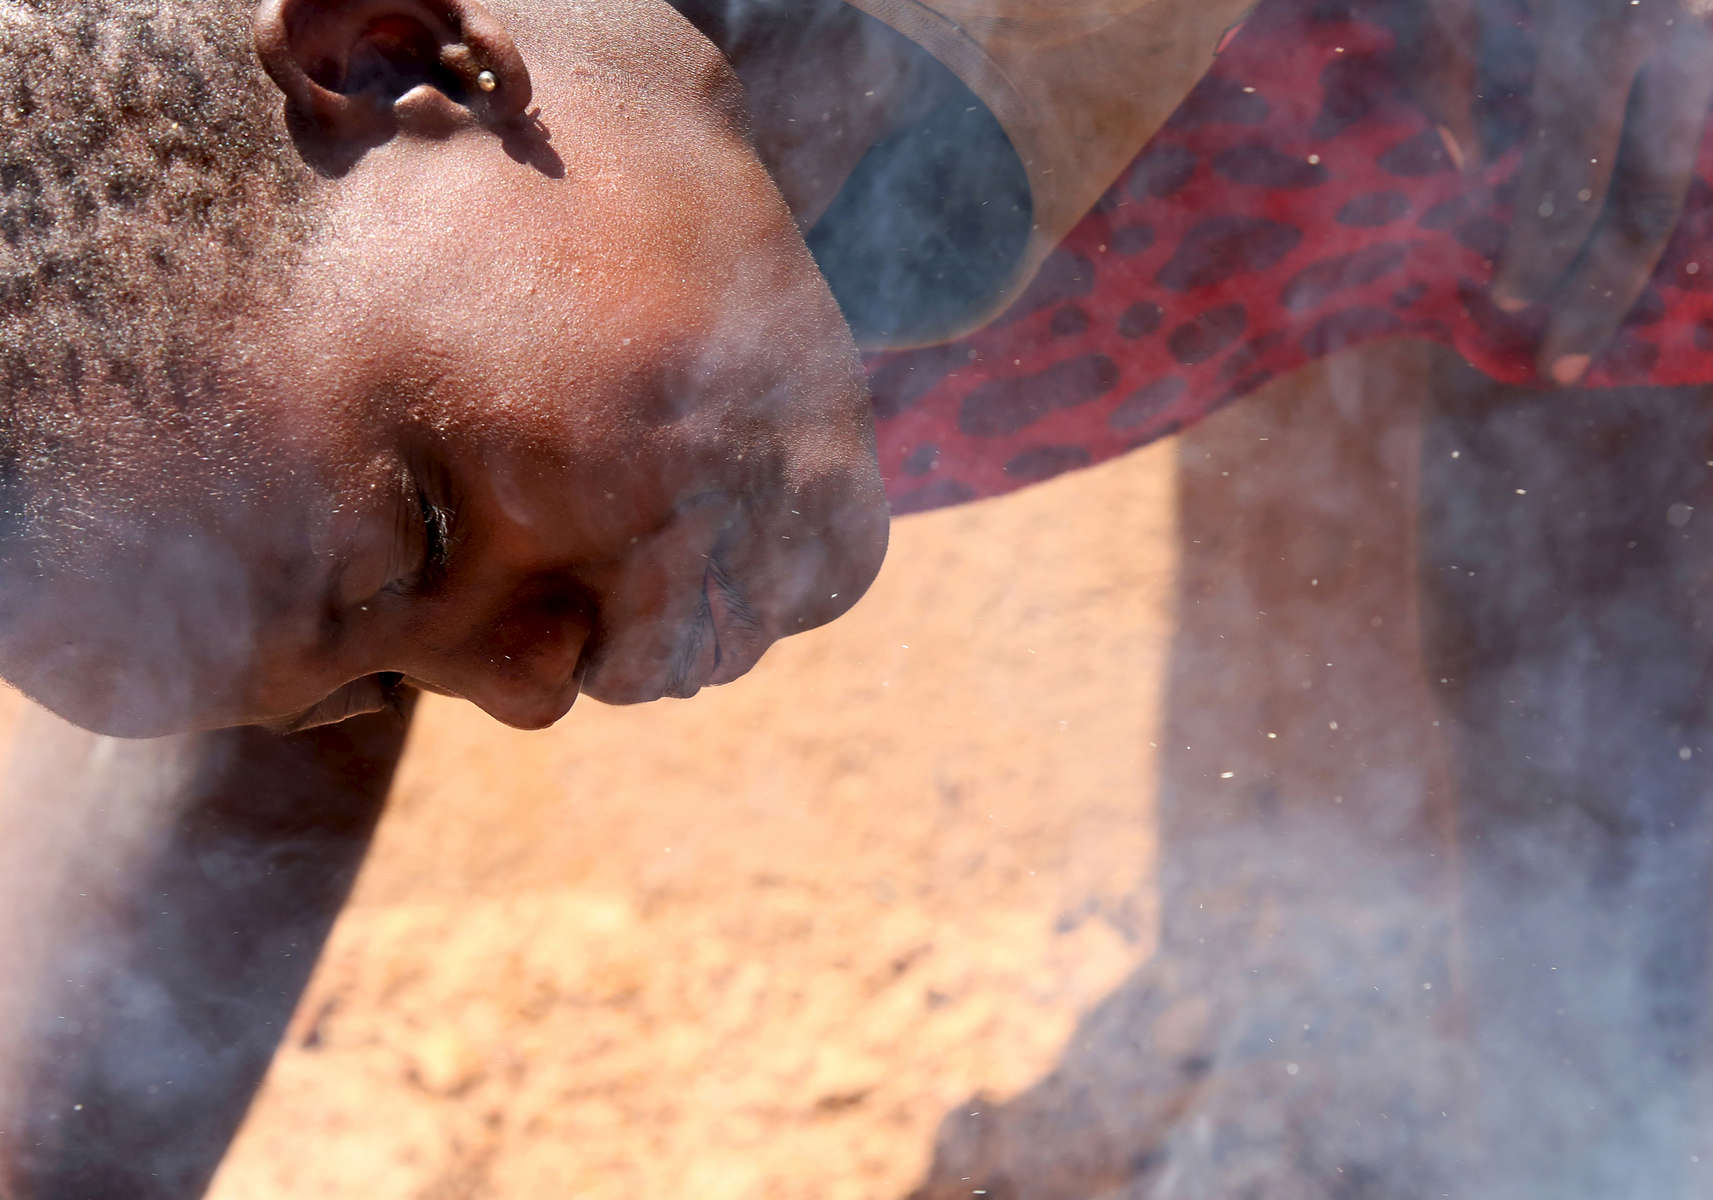 Smoke rises as twelve-year-old Sandra Gihozo blows onto a pot of beans, stoking the wooden fire beneath it in Mount Kigali village in Rwanda, on November 12, 2017. Her aunt Ruth Uwamahoro says Sandra's eyes and throat often hurt from the smoke, and that wood gathering sometimes makes her miss schoolwork.Nearly half of all Rwandans live in poverty, relying on small-scale farming for survival without gas or electricity. With so many women and children spending hours of the day foraging for wood used for cooking and light, often damaging their eyes, lungs, the forests and atmosphere, a little inventiveness helps. Enter cow and enter pig — not just as a source of food, but also the heat needed to cook it. Or more specifically, their poo — the fuel fed to a biogas digester, a tank that coverts organic waste into methane. Photographs by: Yana Paskova